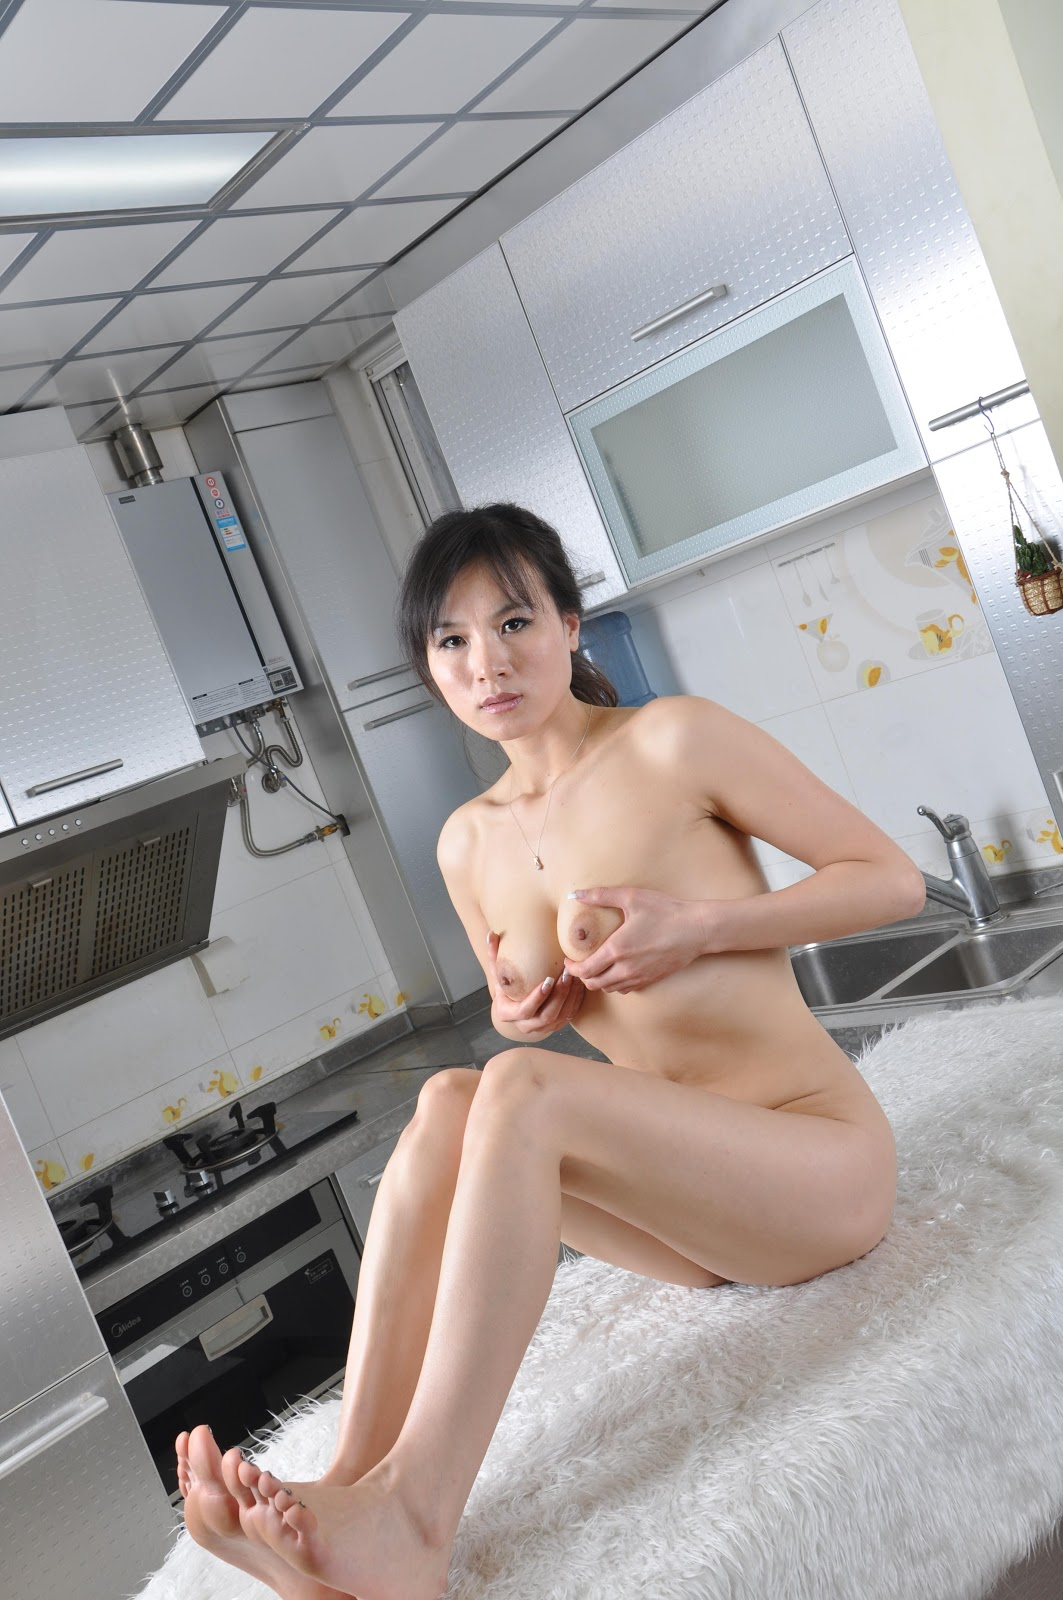 Chinese Nude_Art_Photos_-_299_-_YuLou.rar